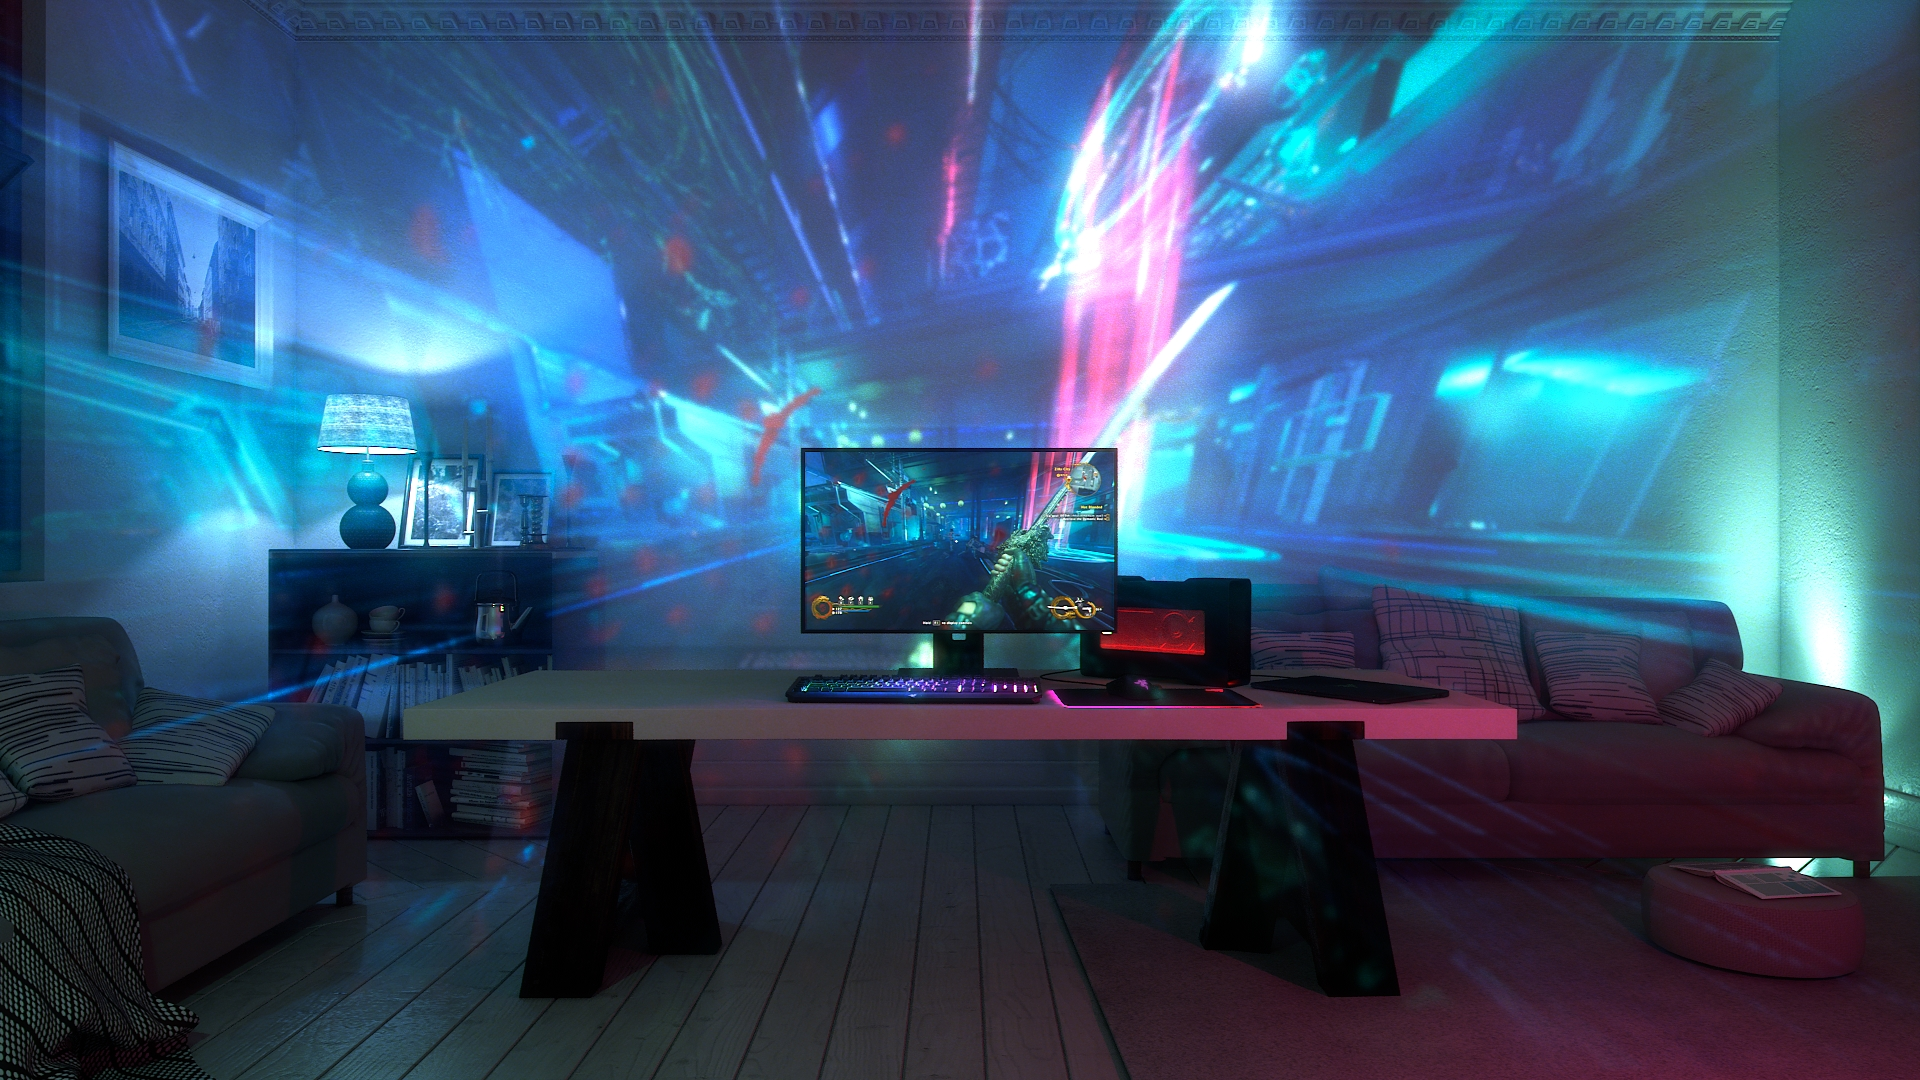 Razer Announces Project Ariana: Chroma Lighting Comes To The Room